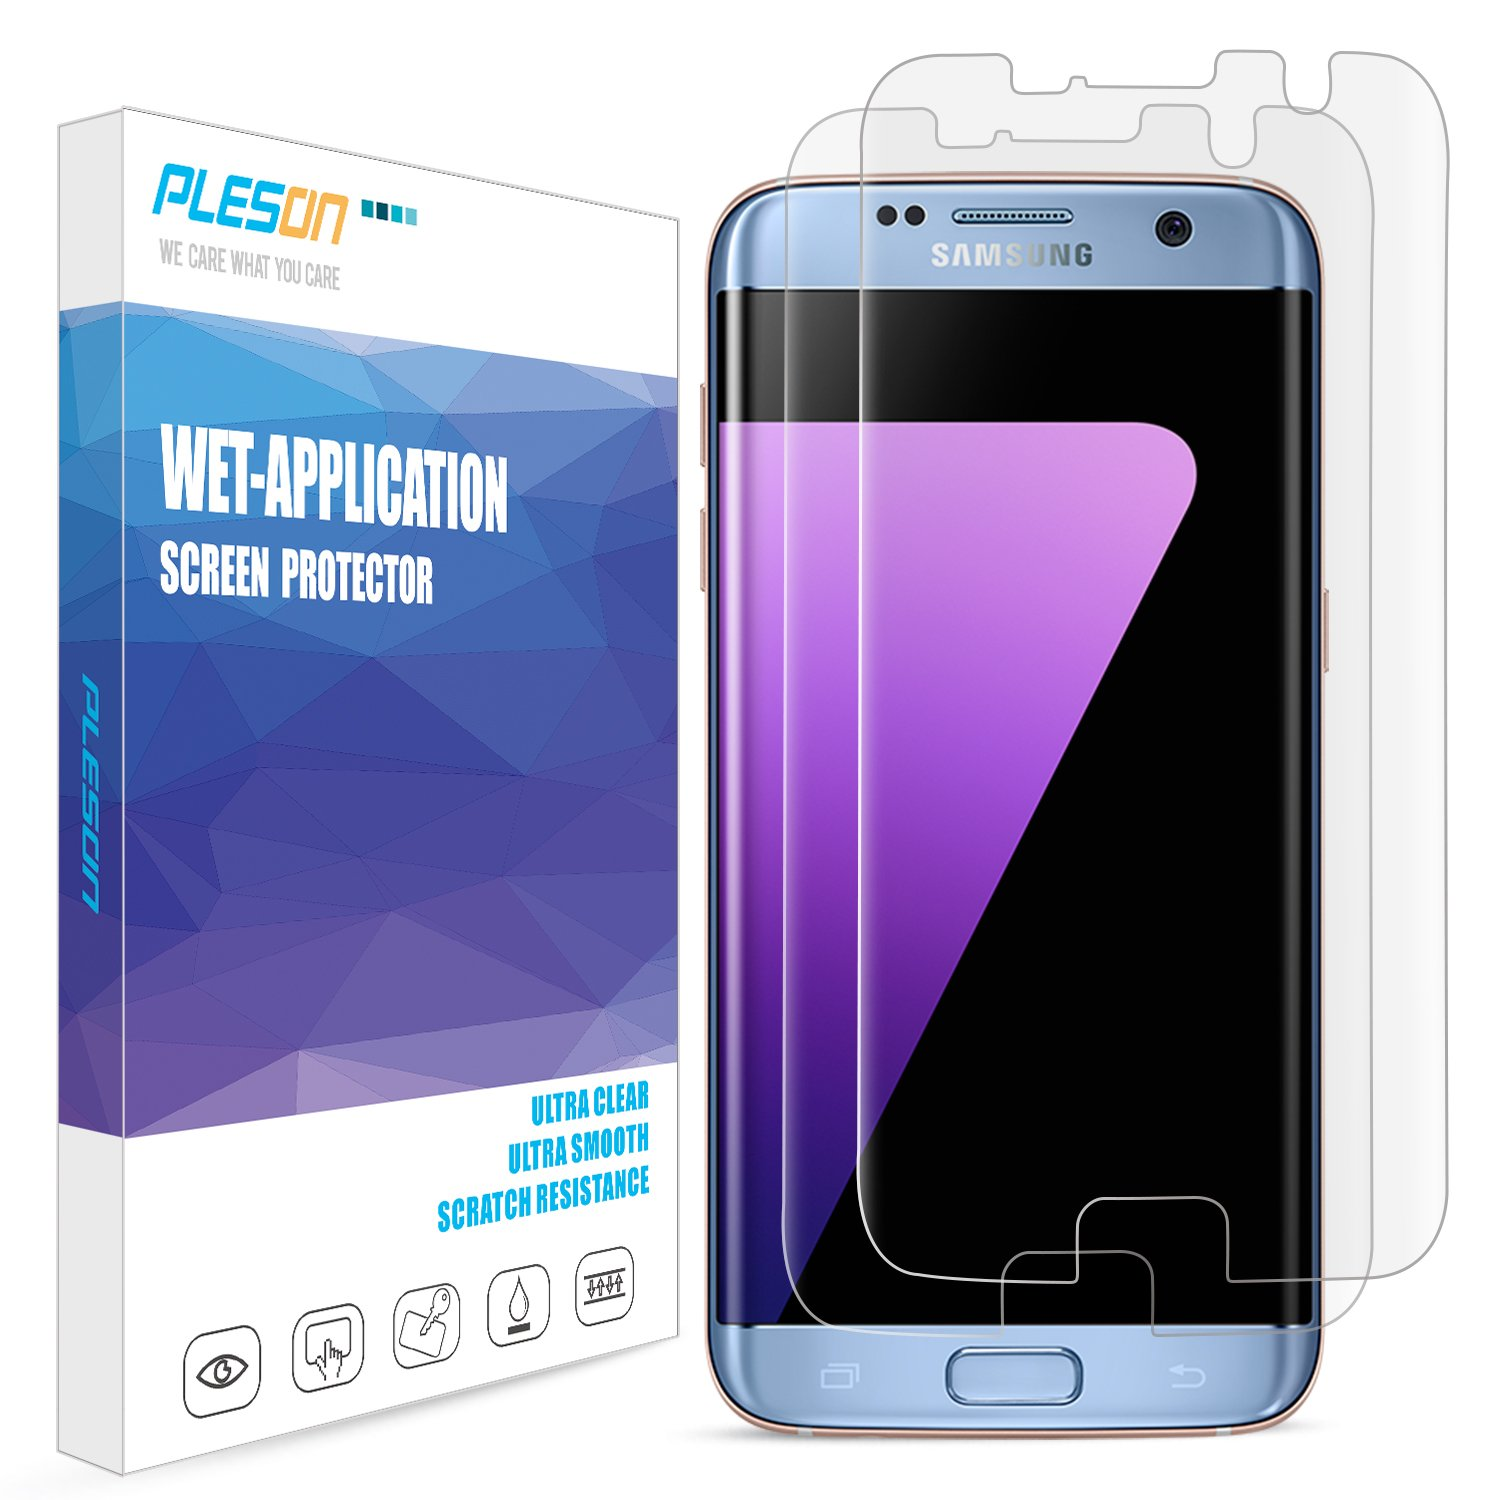 Galaxy S7 Edge Screen Protector, [2-Pack] PLESON [Case Friendly] [Updated Version] [Full Coverage] [Bubble-Free] [No Lifted Edges]Wet Applied HD Clear Film Screen Protector for Samsung Galaxy S7 Edge